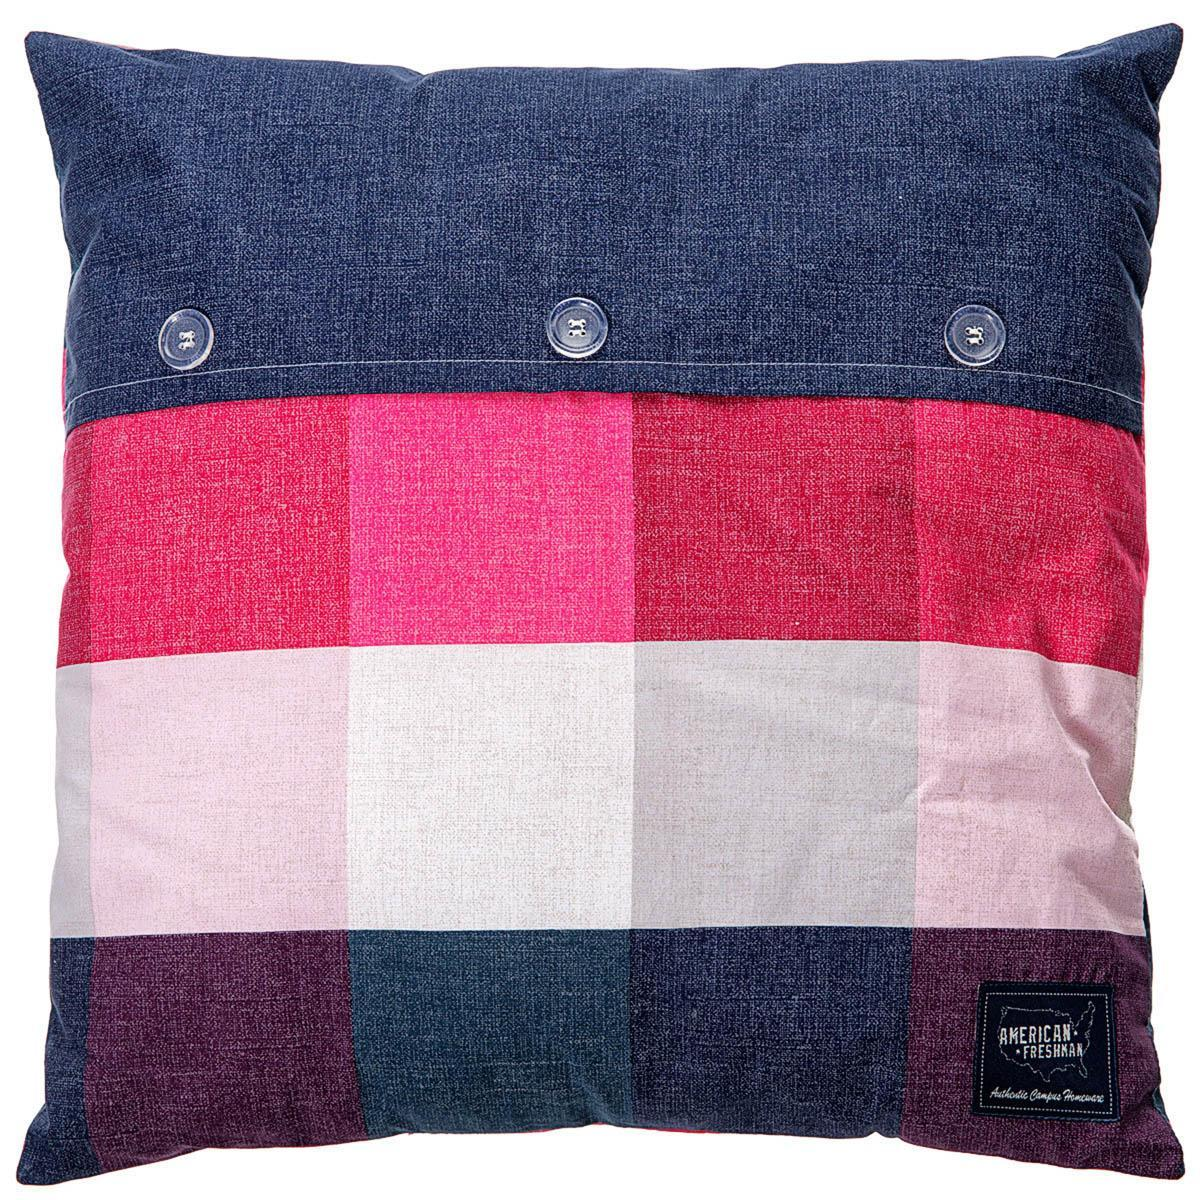 Ashley Wilde Cushions And Throws  Anderson Filled Square Cushion Cherry Multi